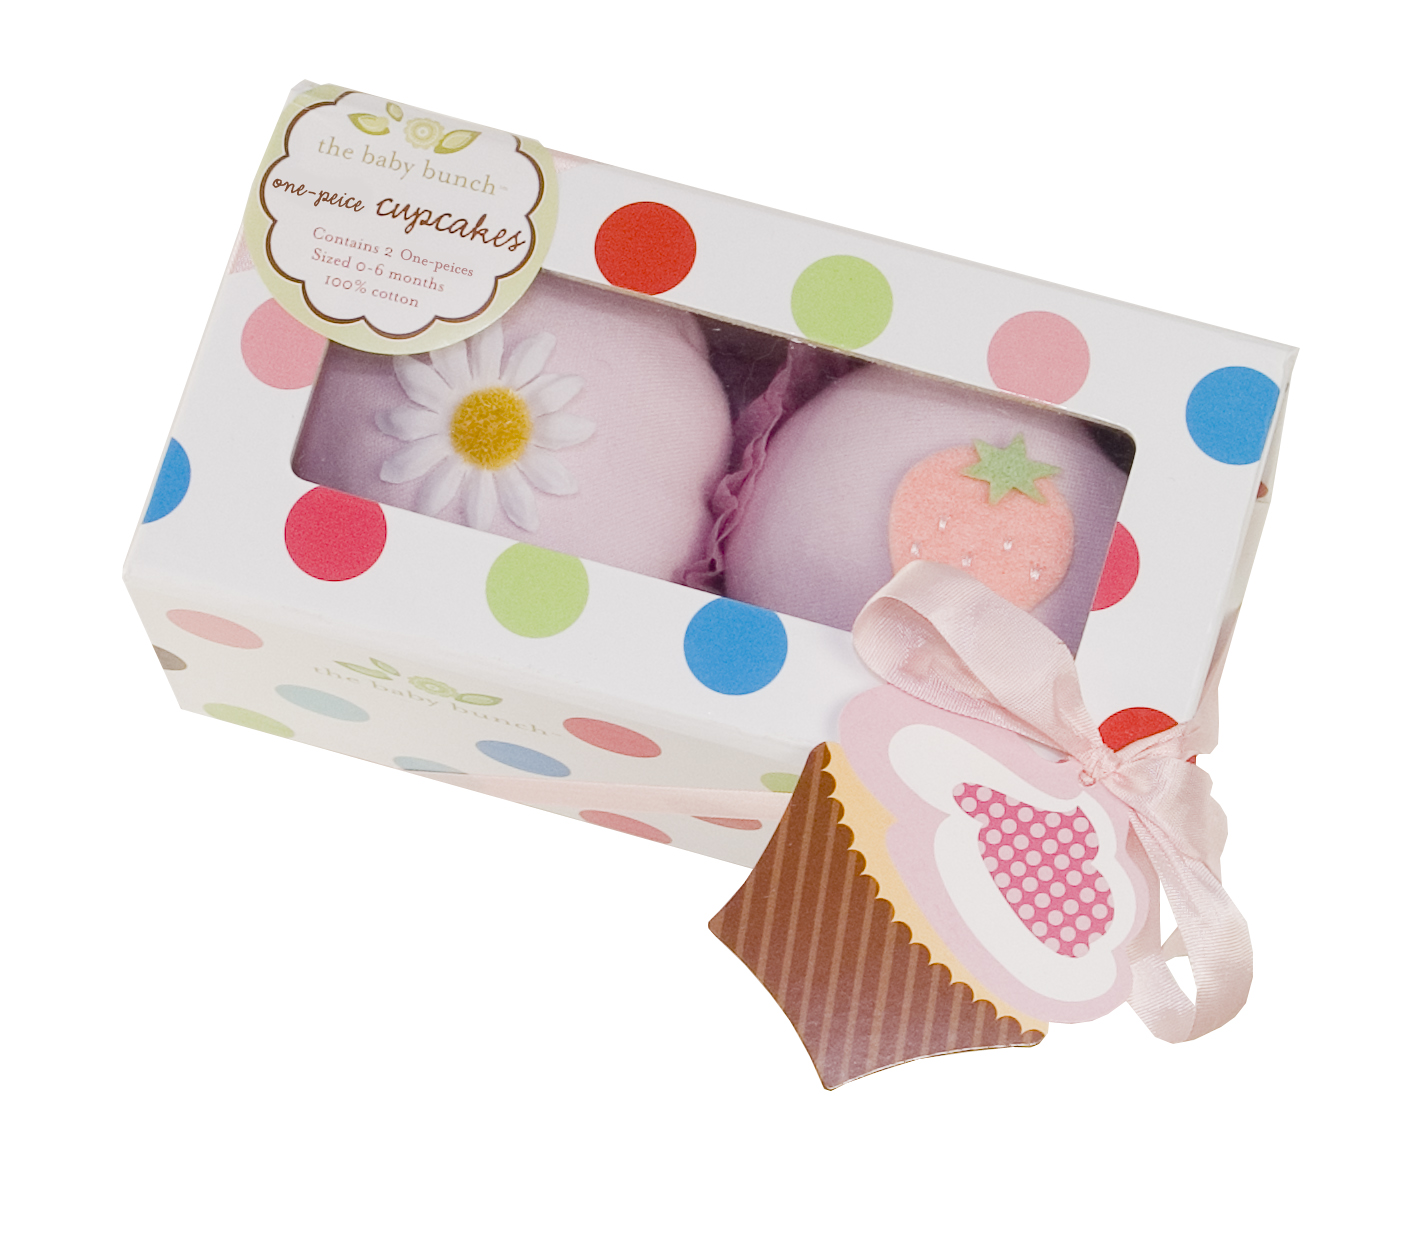 Box of 2 Pink Cupcake One-pieces